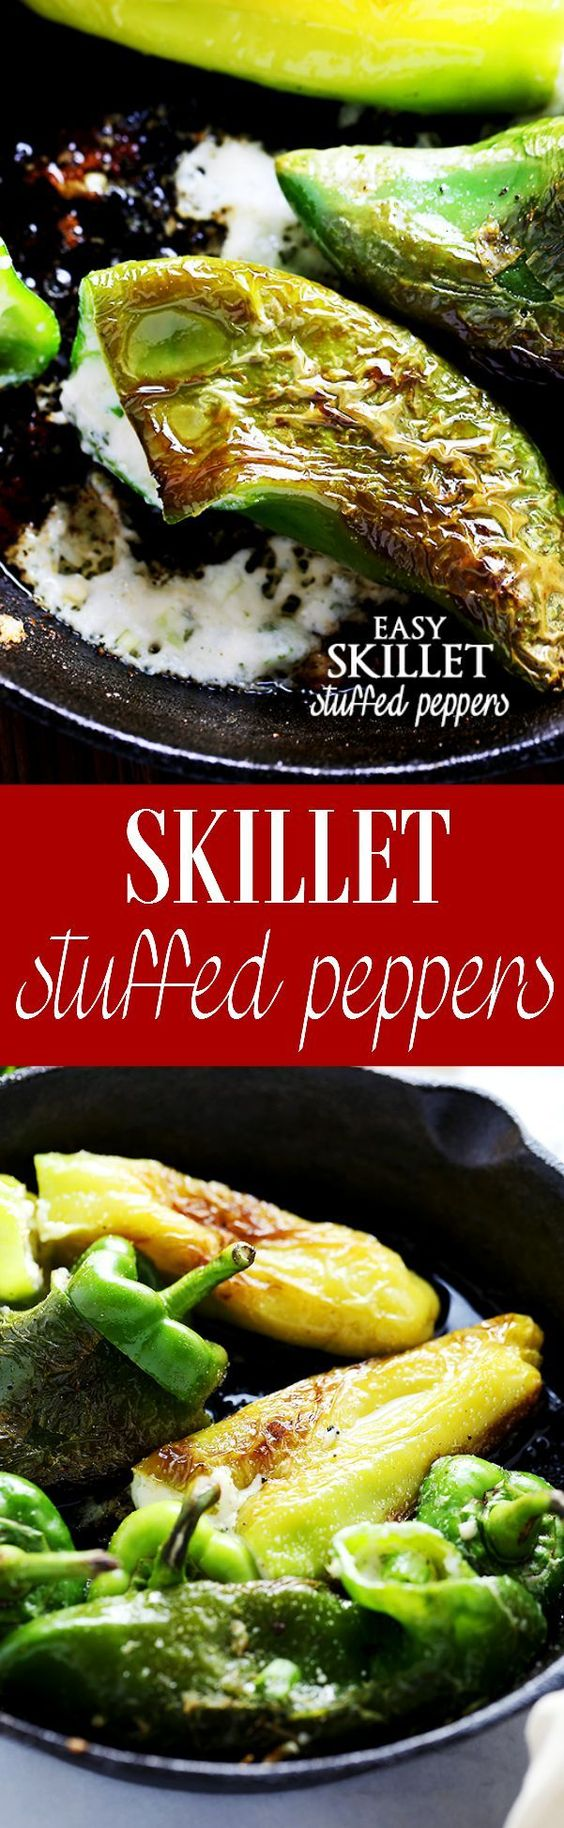 Easy Skillet Stuffed Peppers | www.diethood.com | Quick, easy, deliciously cheesy stuffed peppers prepared on the stove top.